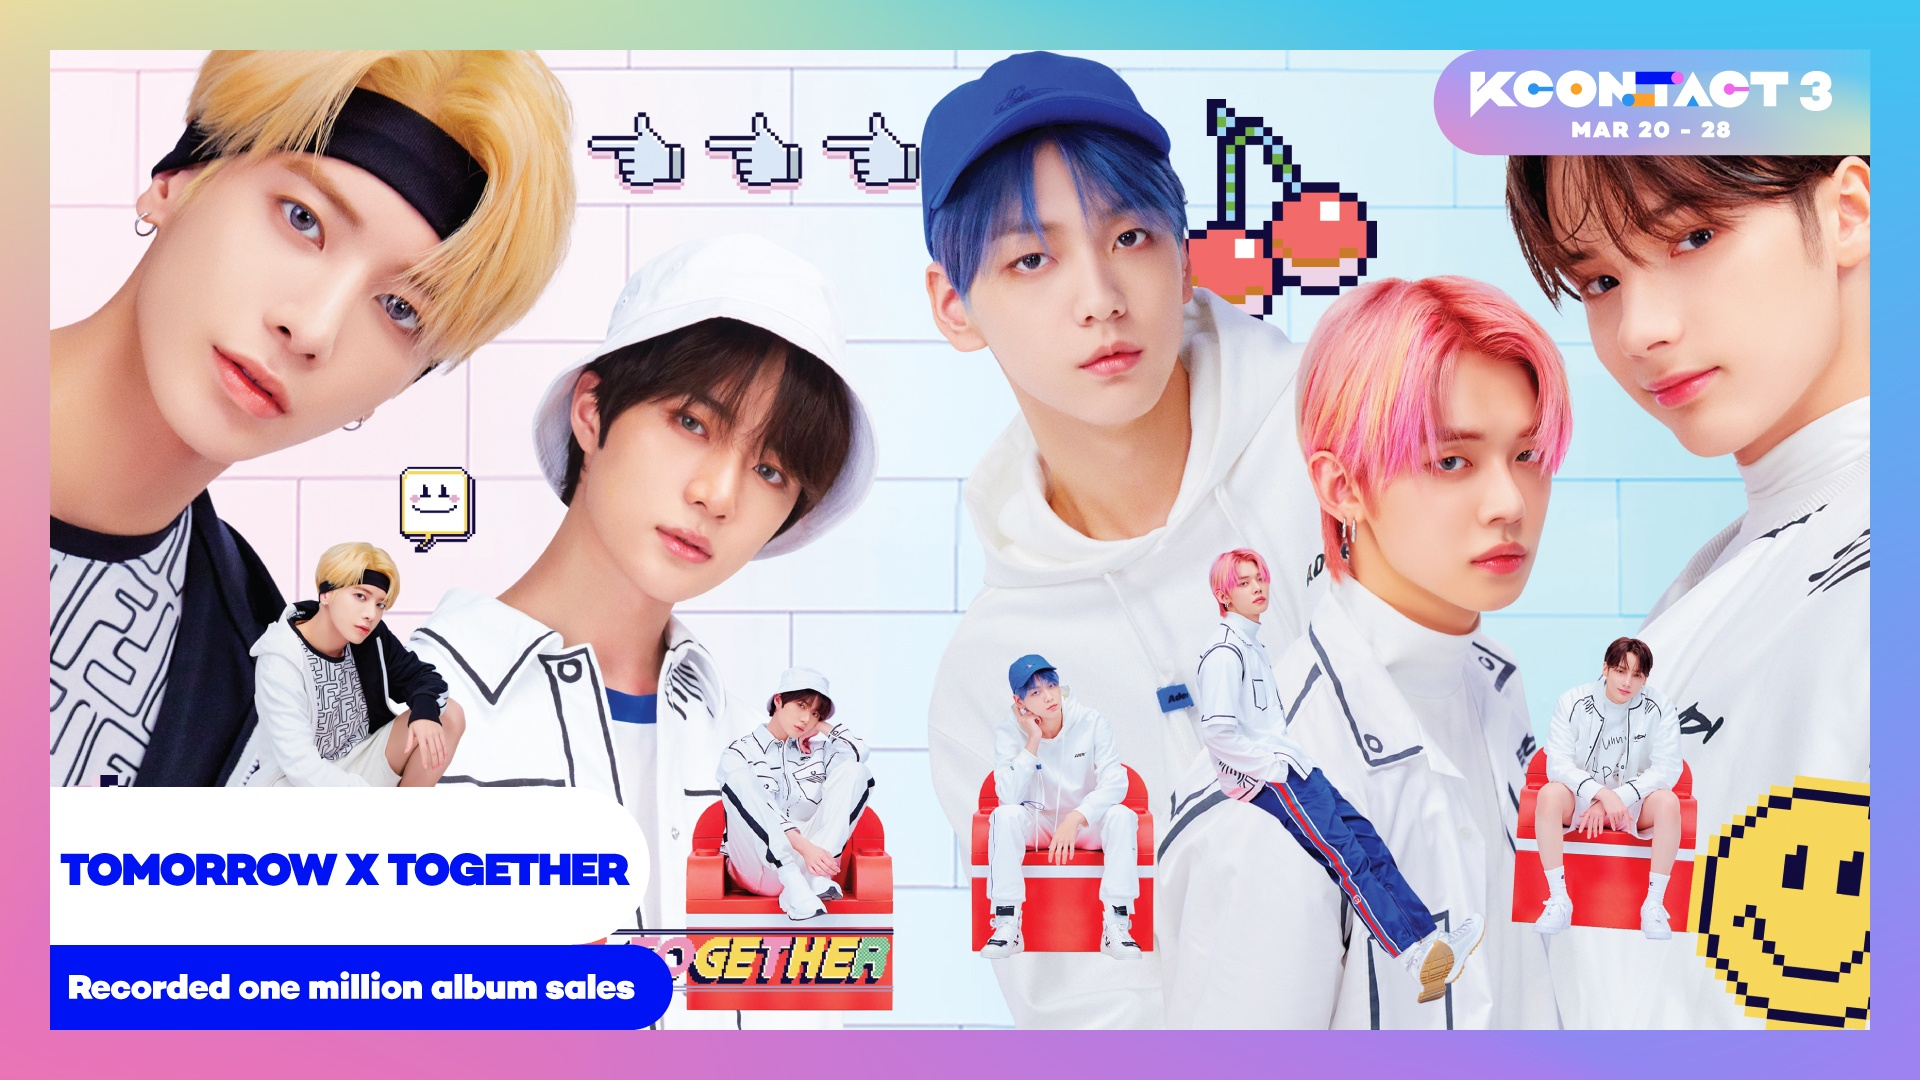 KCONTACT 3 TOMORROW X TOGETHER